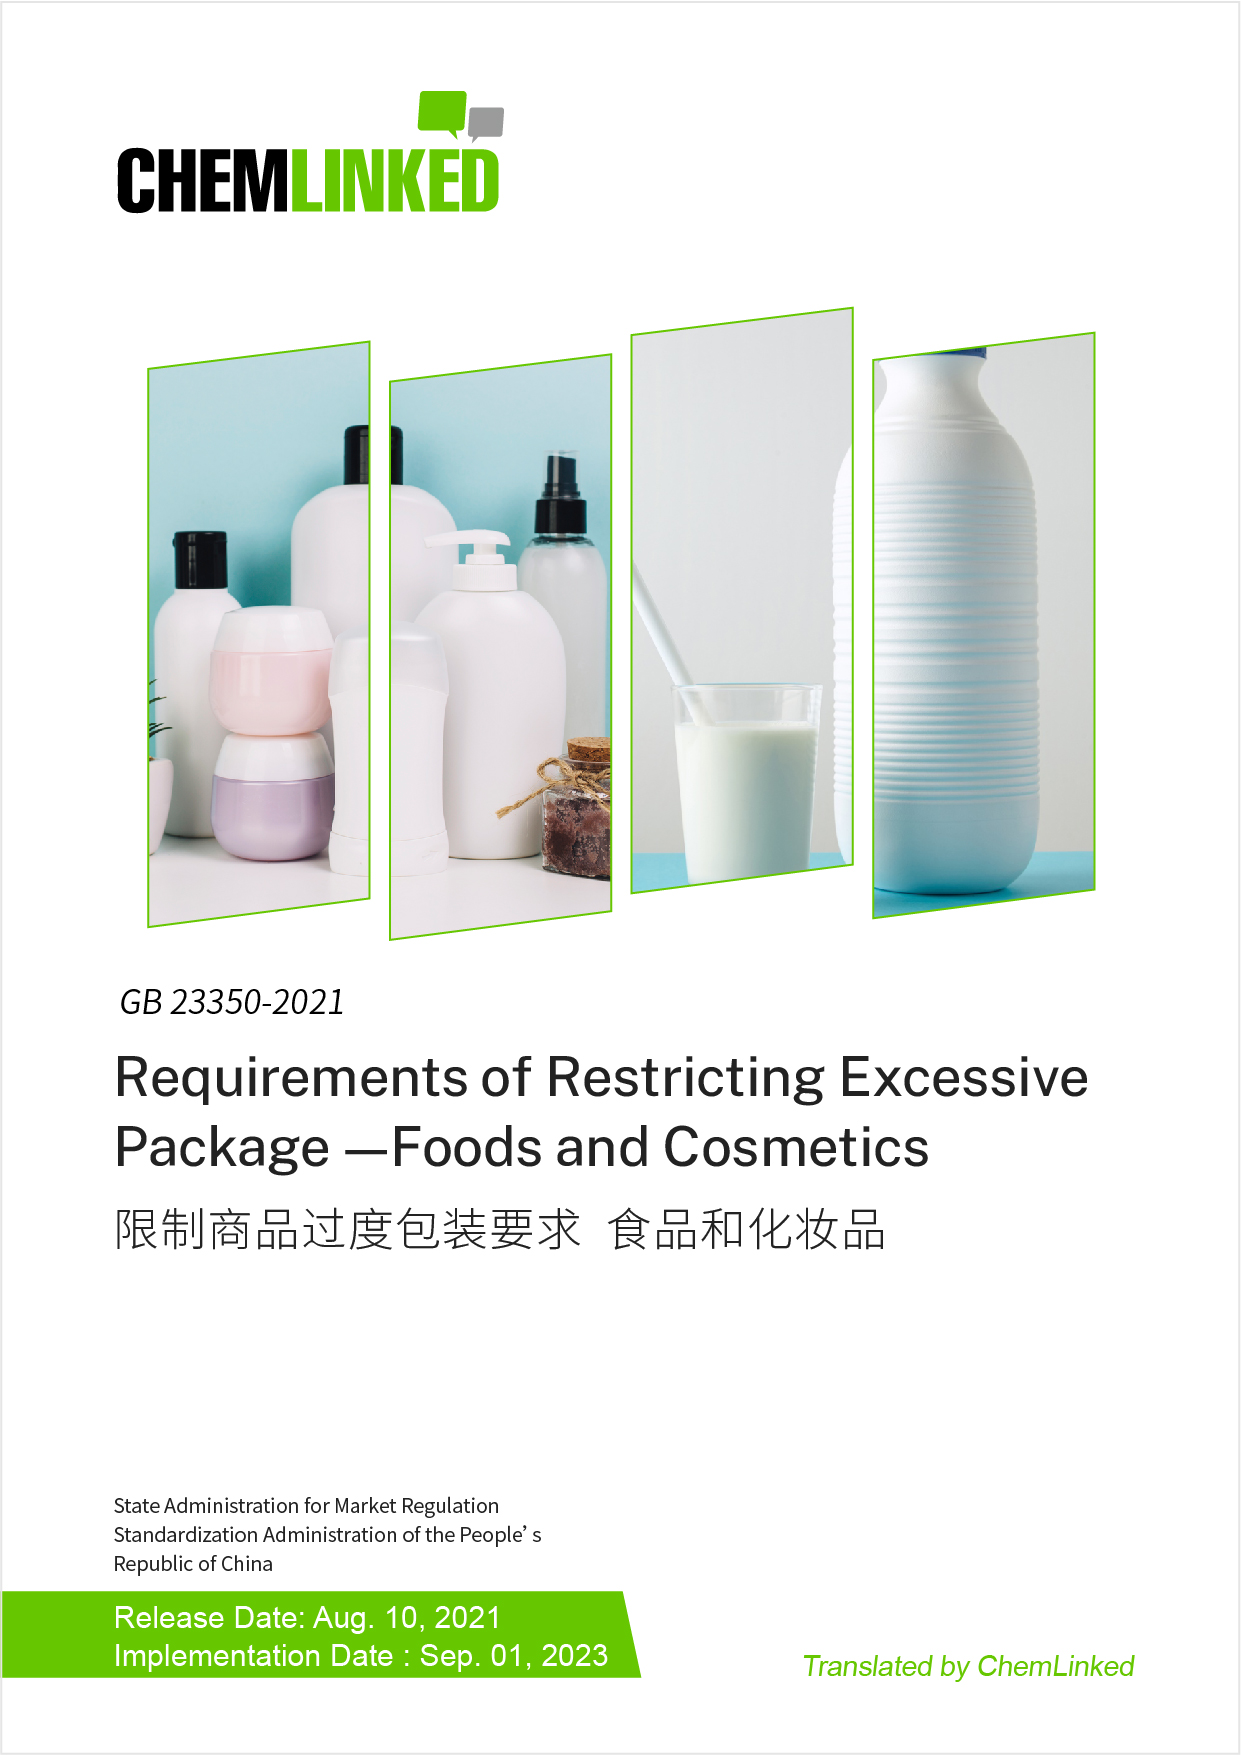 GB 23350-2021 Requirements of Restricting Excessive Package–Foods and Cosmetics